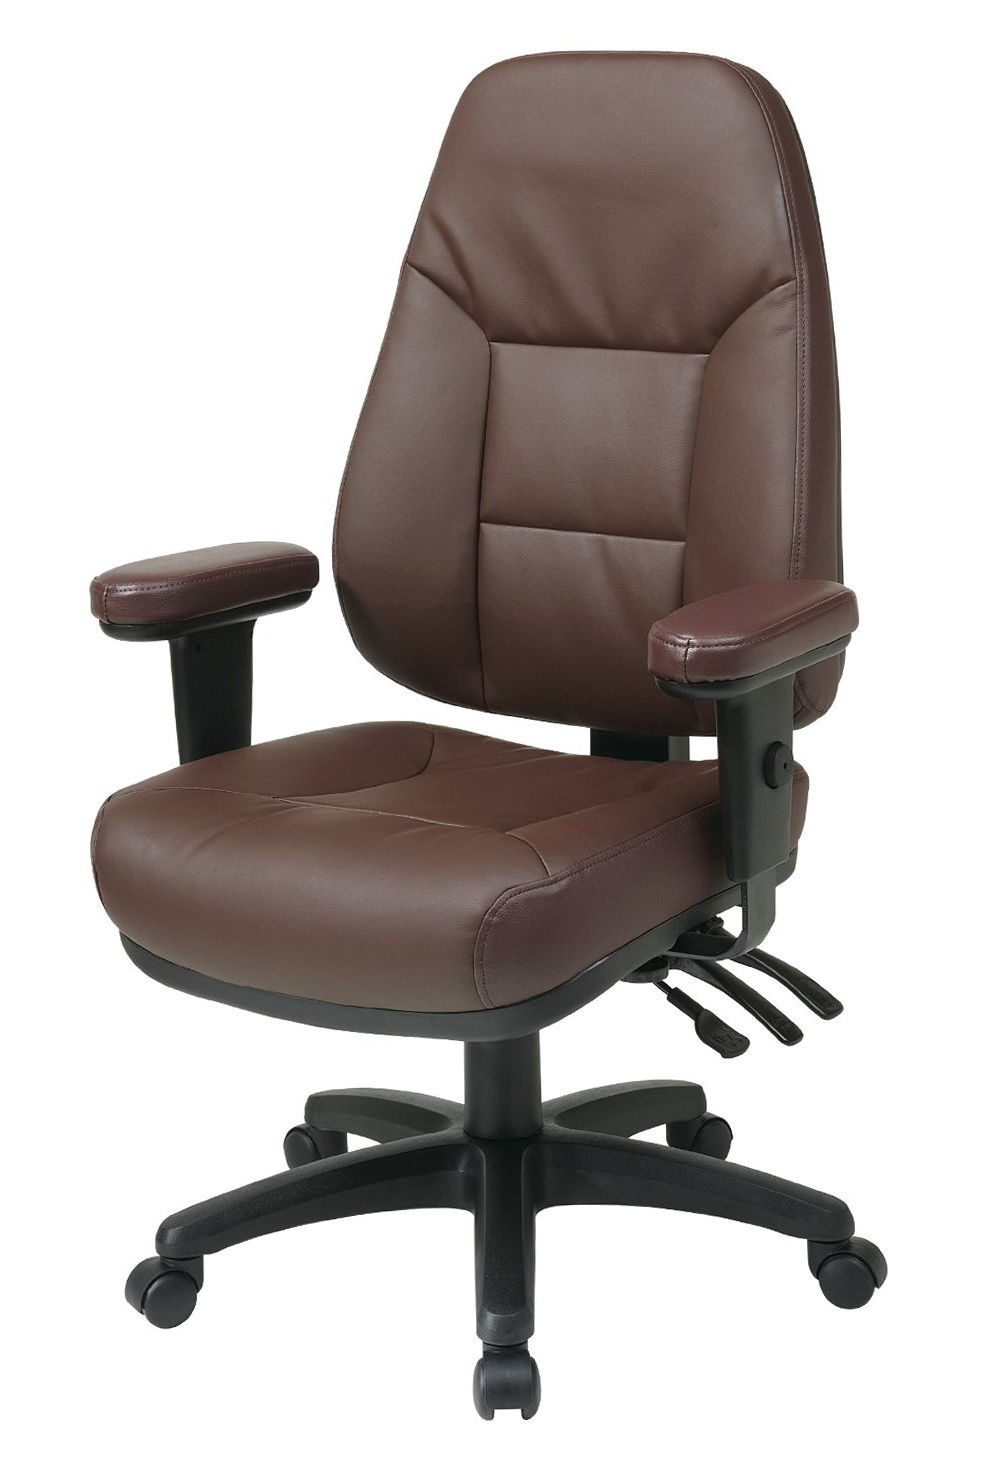 Best Massage Chair For Tall People